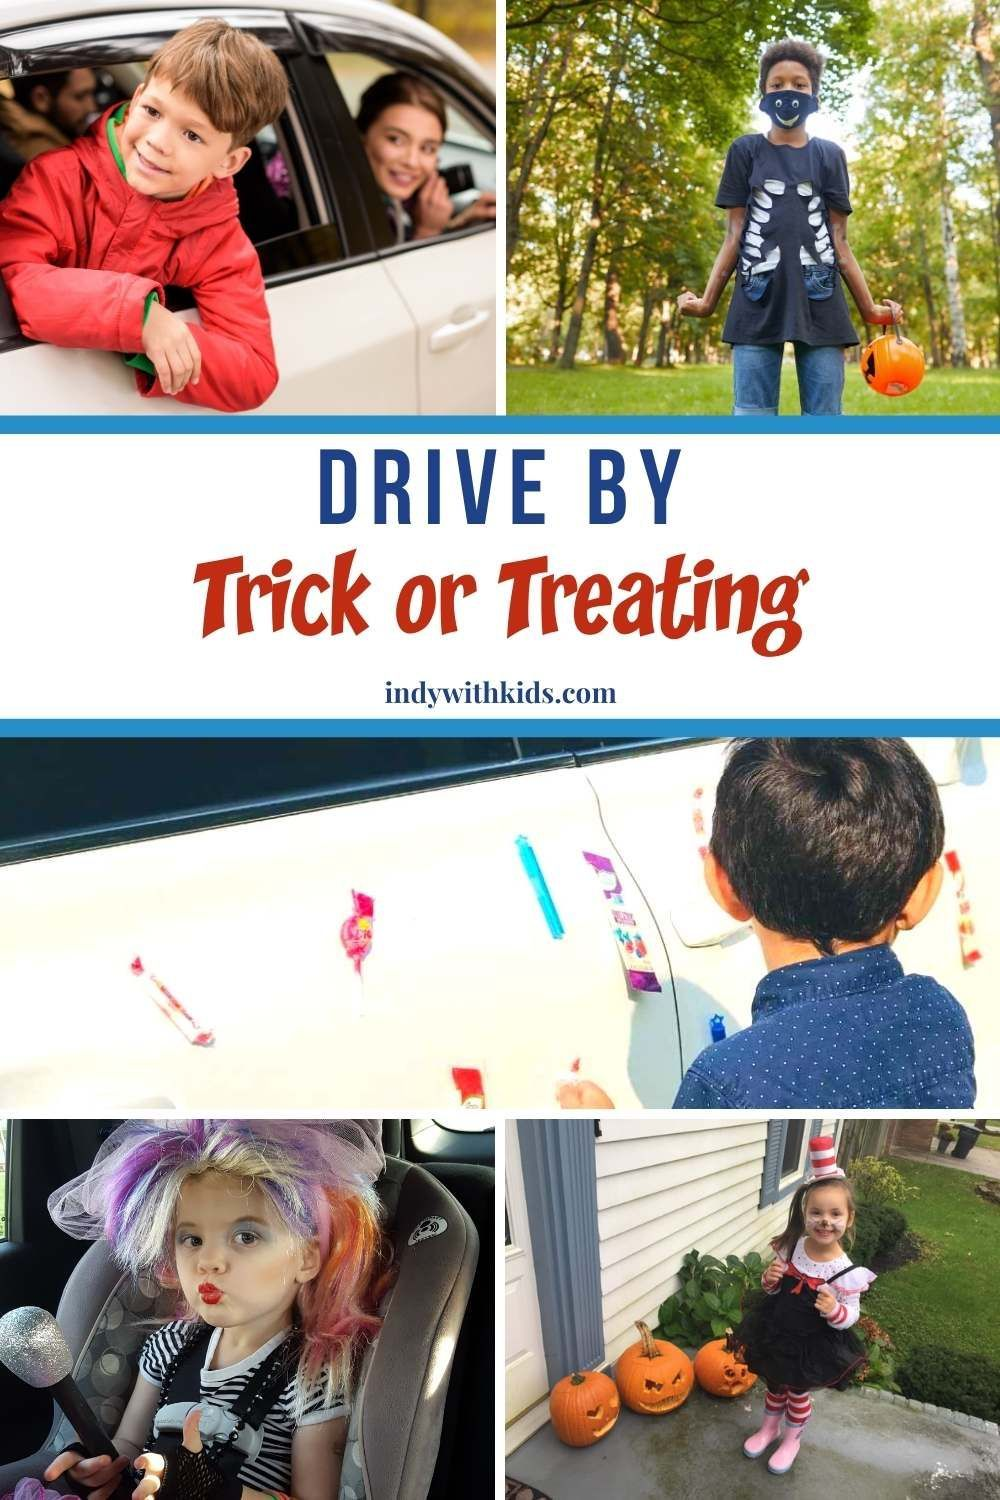 Free Halloween Events Indianapolis 2020 Drive By Trick or Treating | How to Have a Halloween Parade in